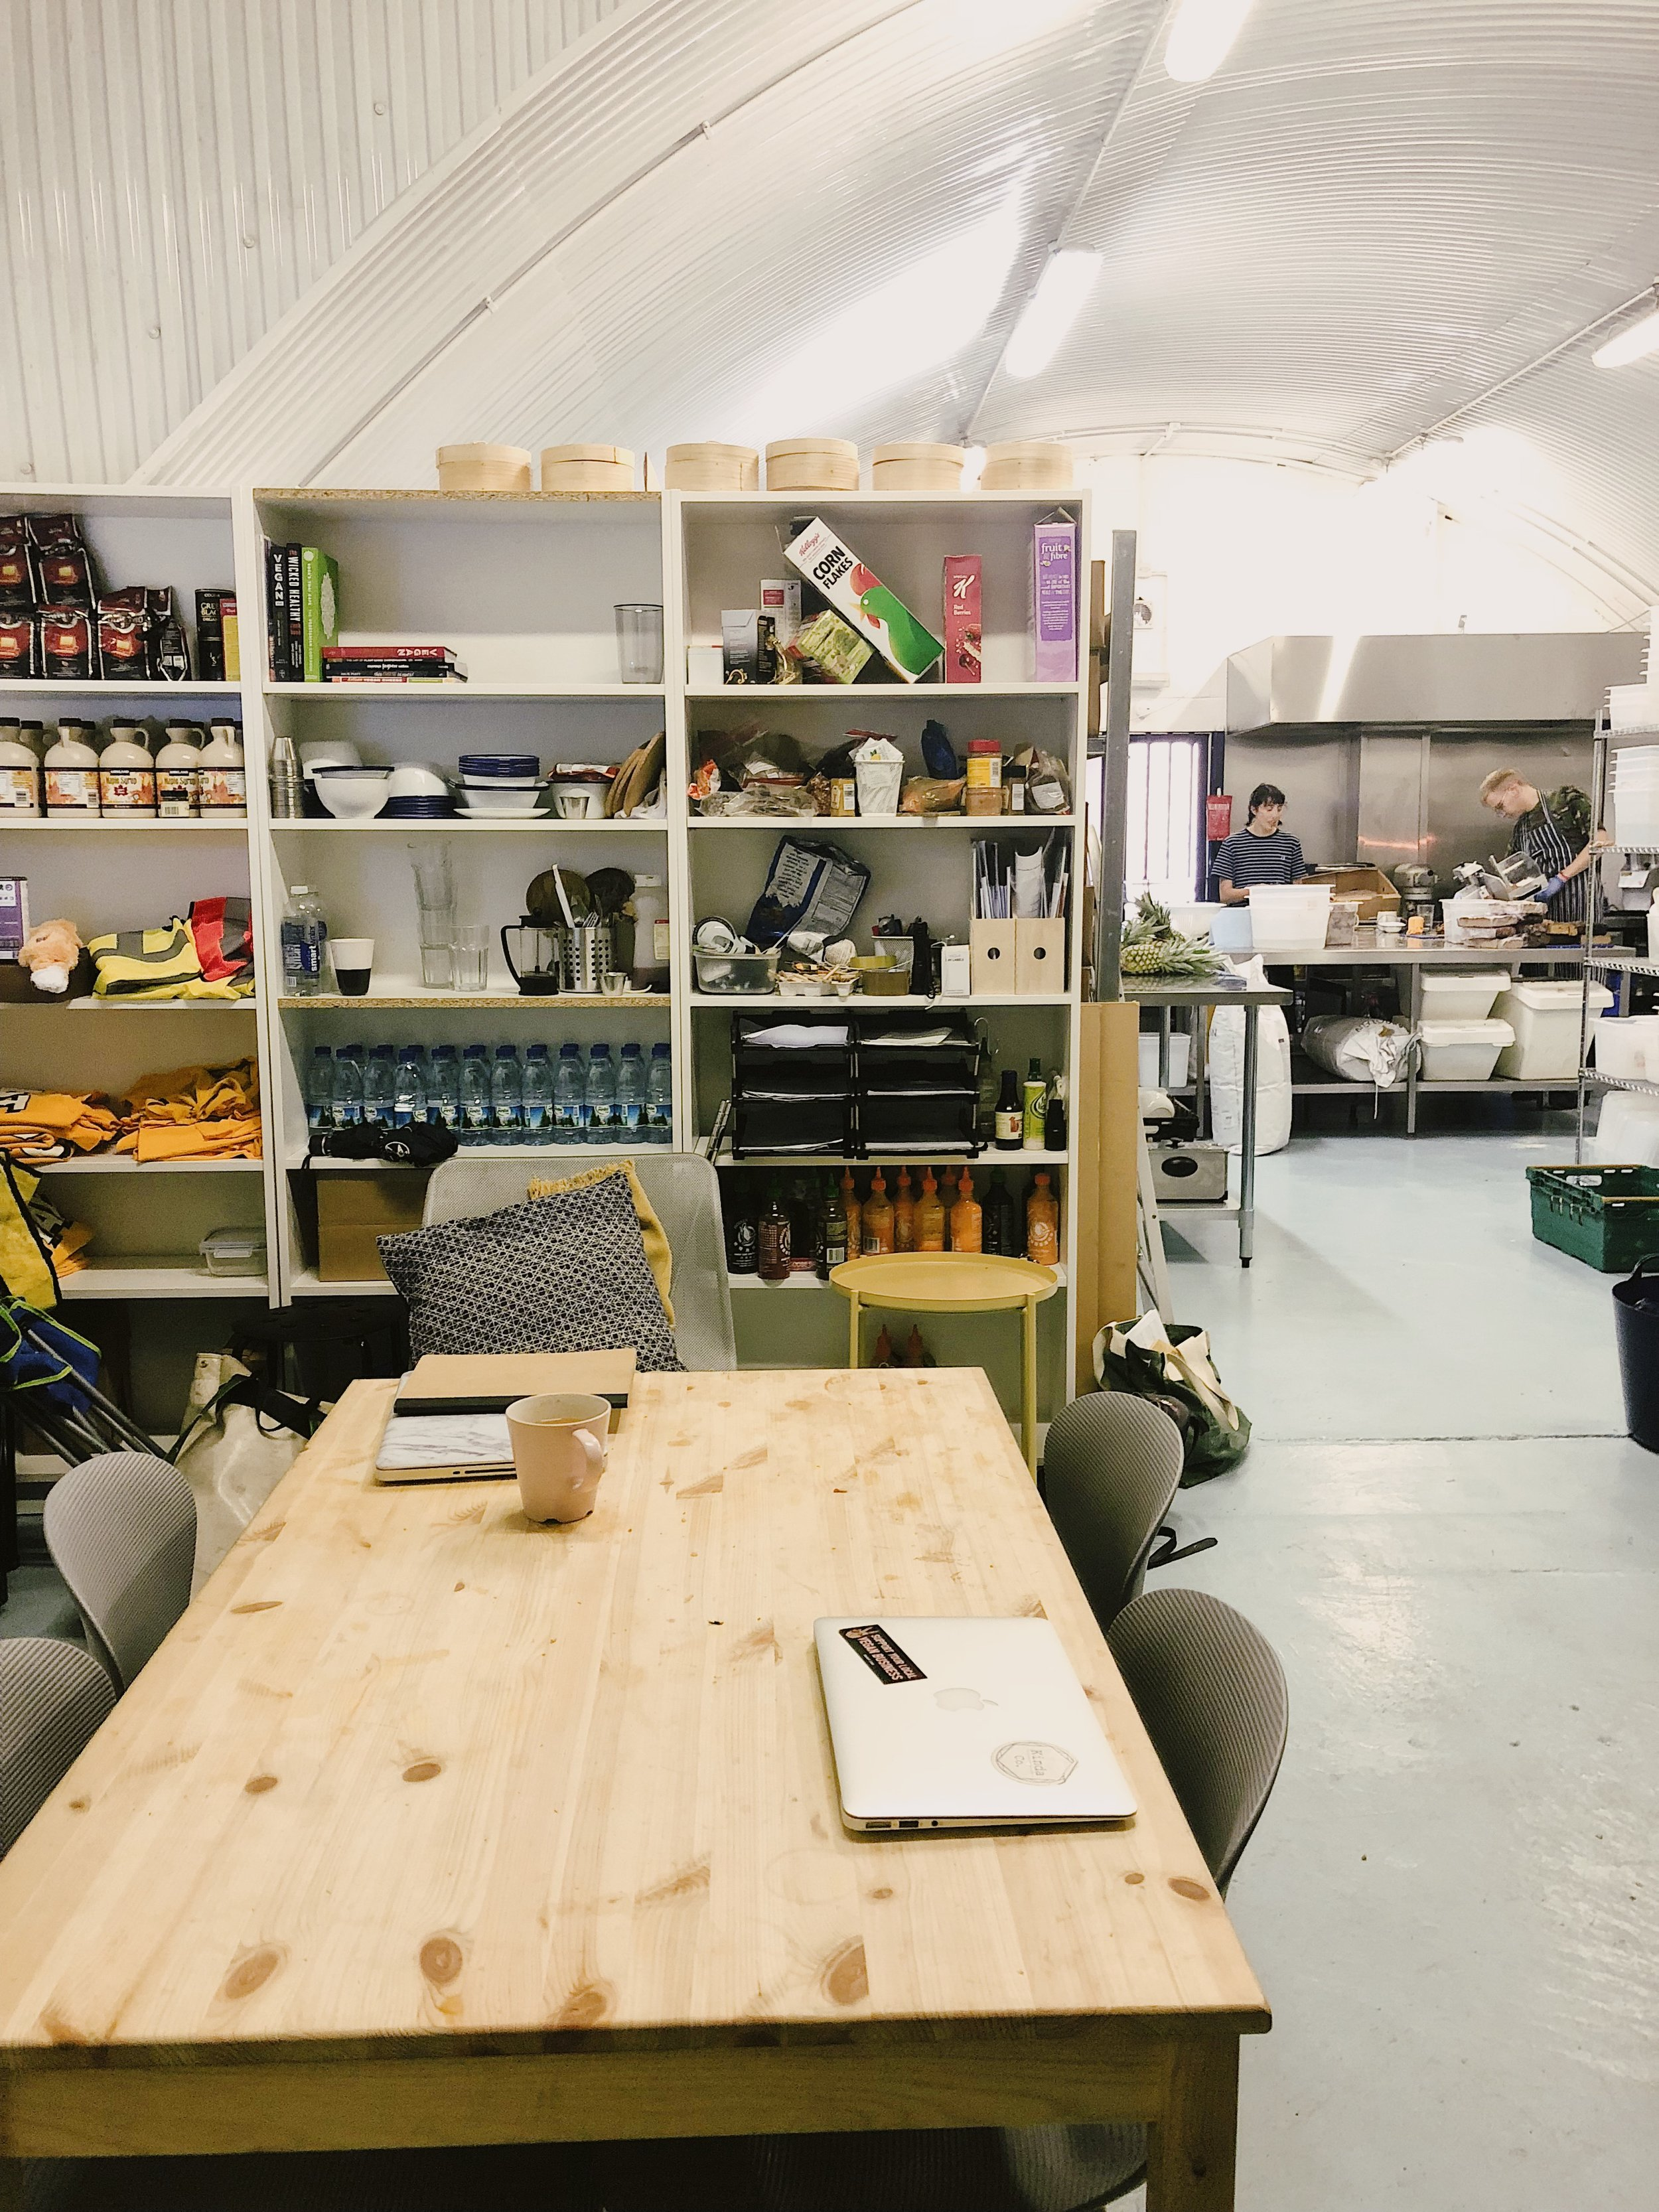 kitchen for rent pantry hire eat chay commercial vegan shoreditch spitafields hackney